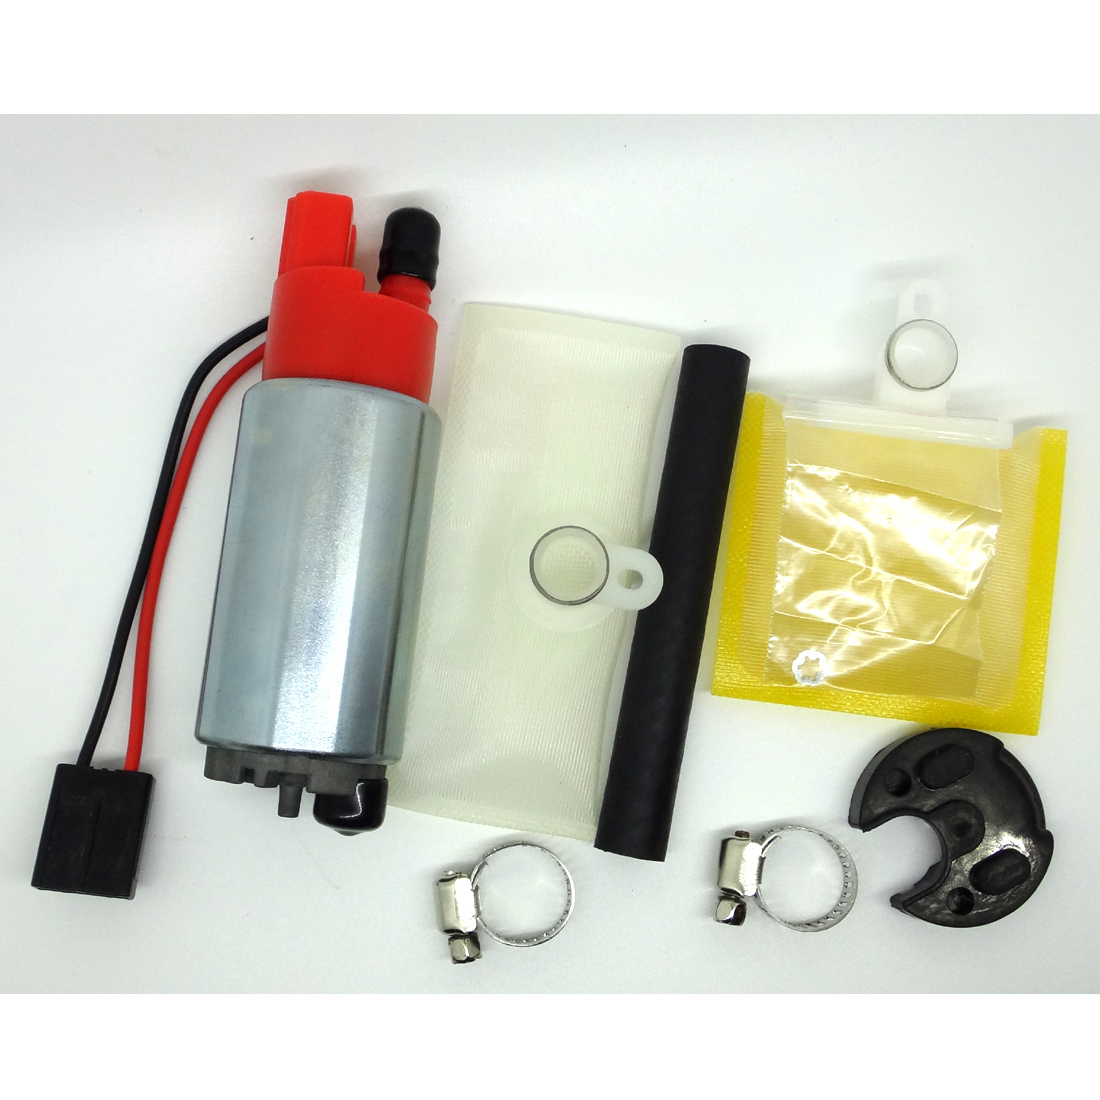 EFI Fuel Pump For YA -MAHA Outboard V6 HPDI VMAX 150 175 200 225 HP 300 2000-2006 V6 HPDI VMAX 150 175 200 225 HP 300 2000-2006(China (Mainland))